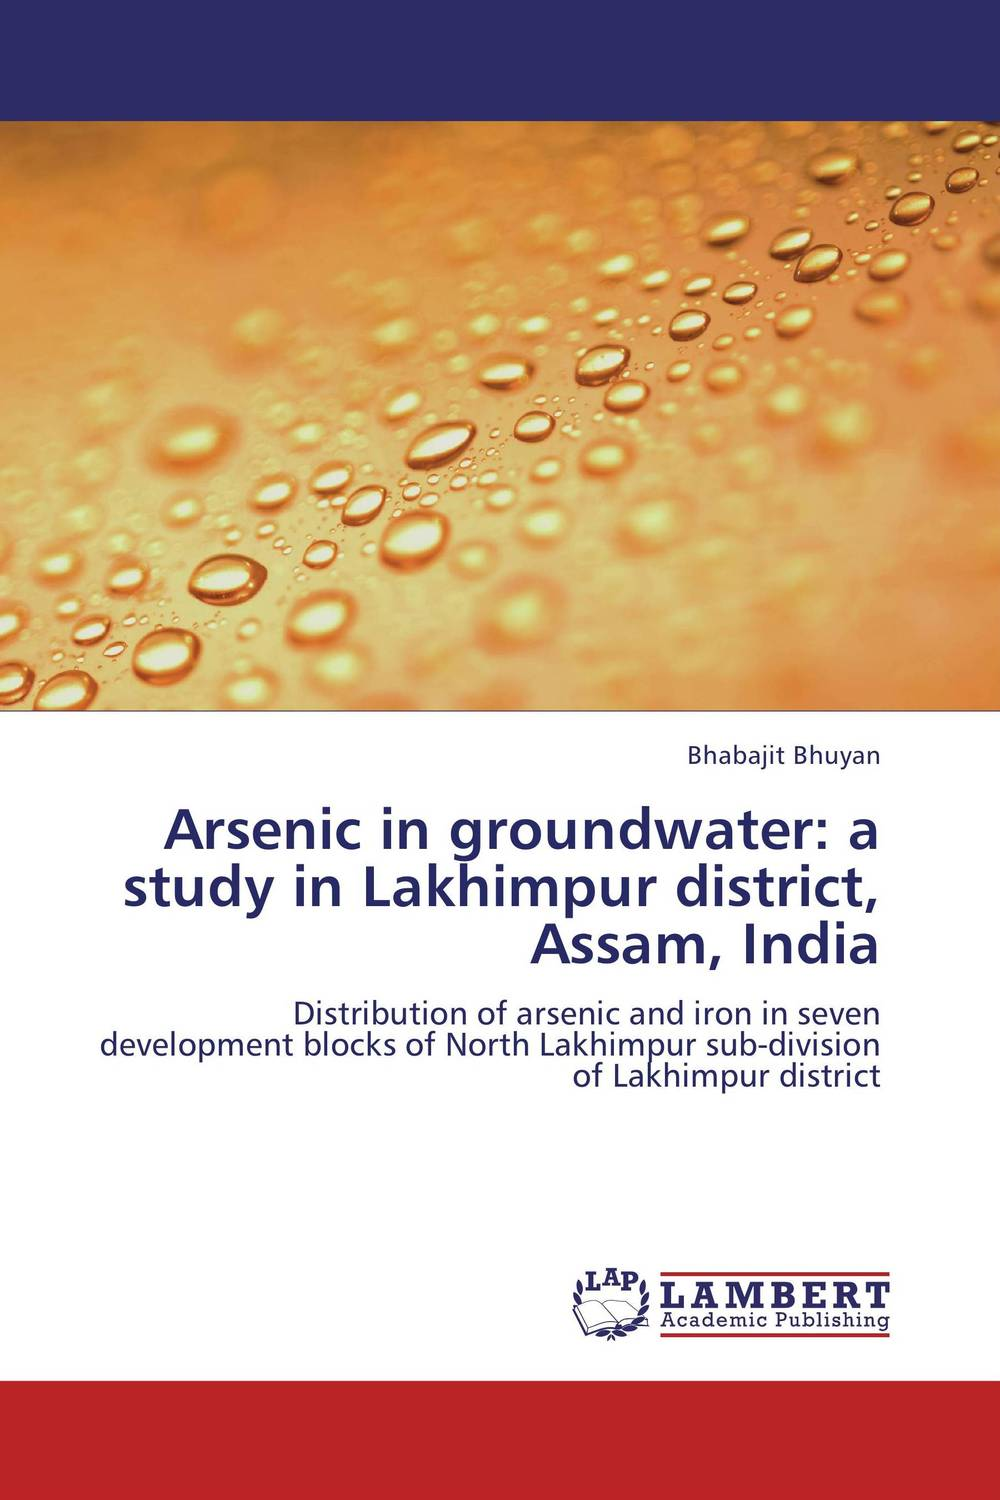 Arsenic in groundwater: a study in Lakhimpur district, Assam, India